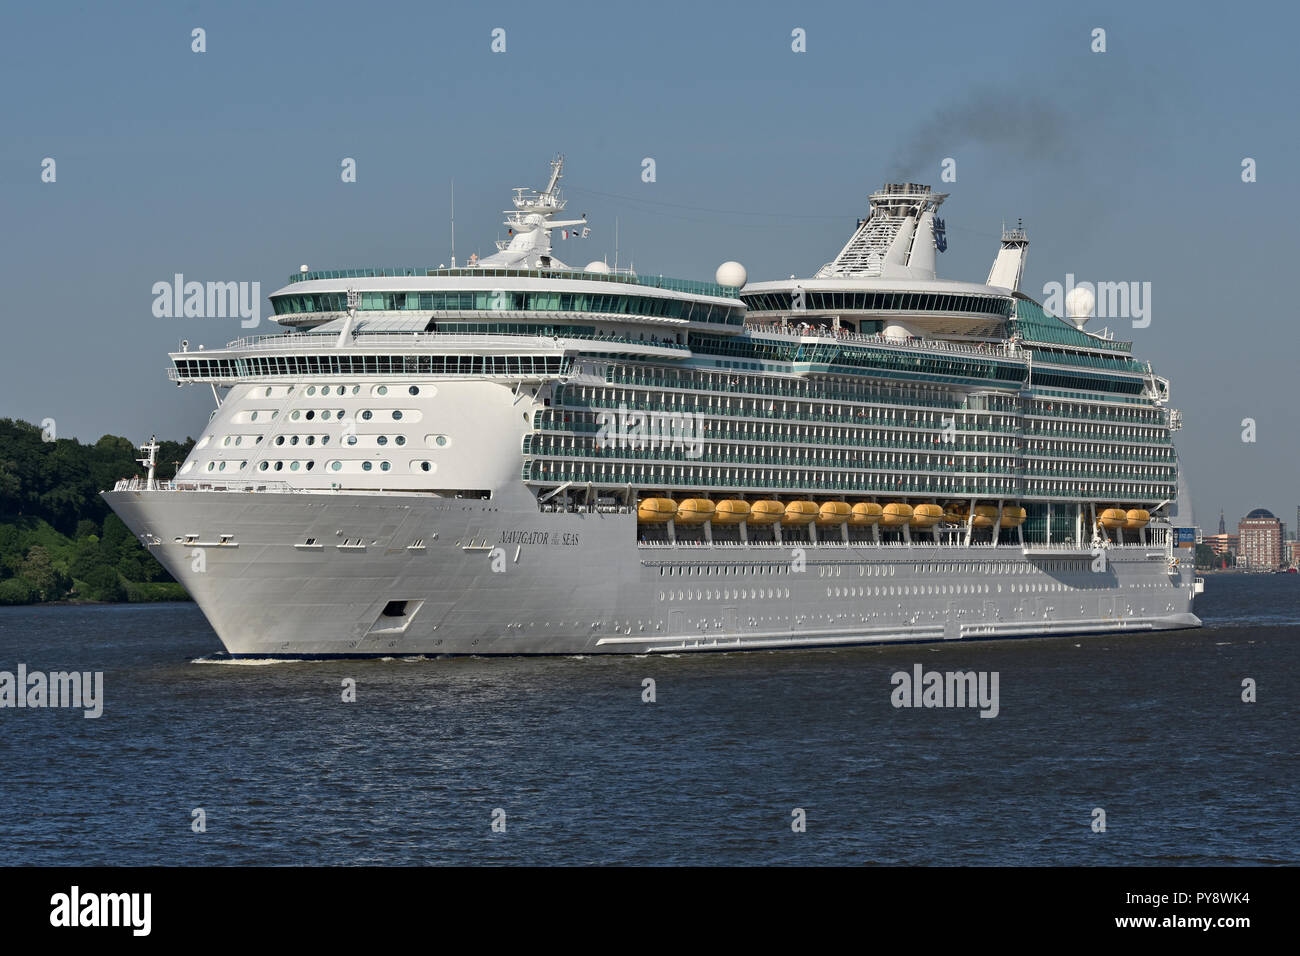 Navigator of the Seas - Stock Image